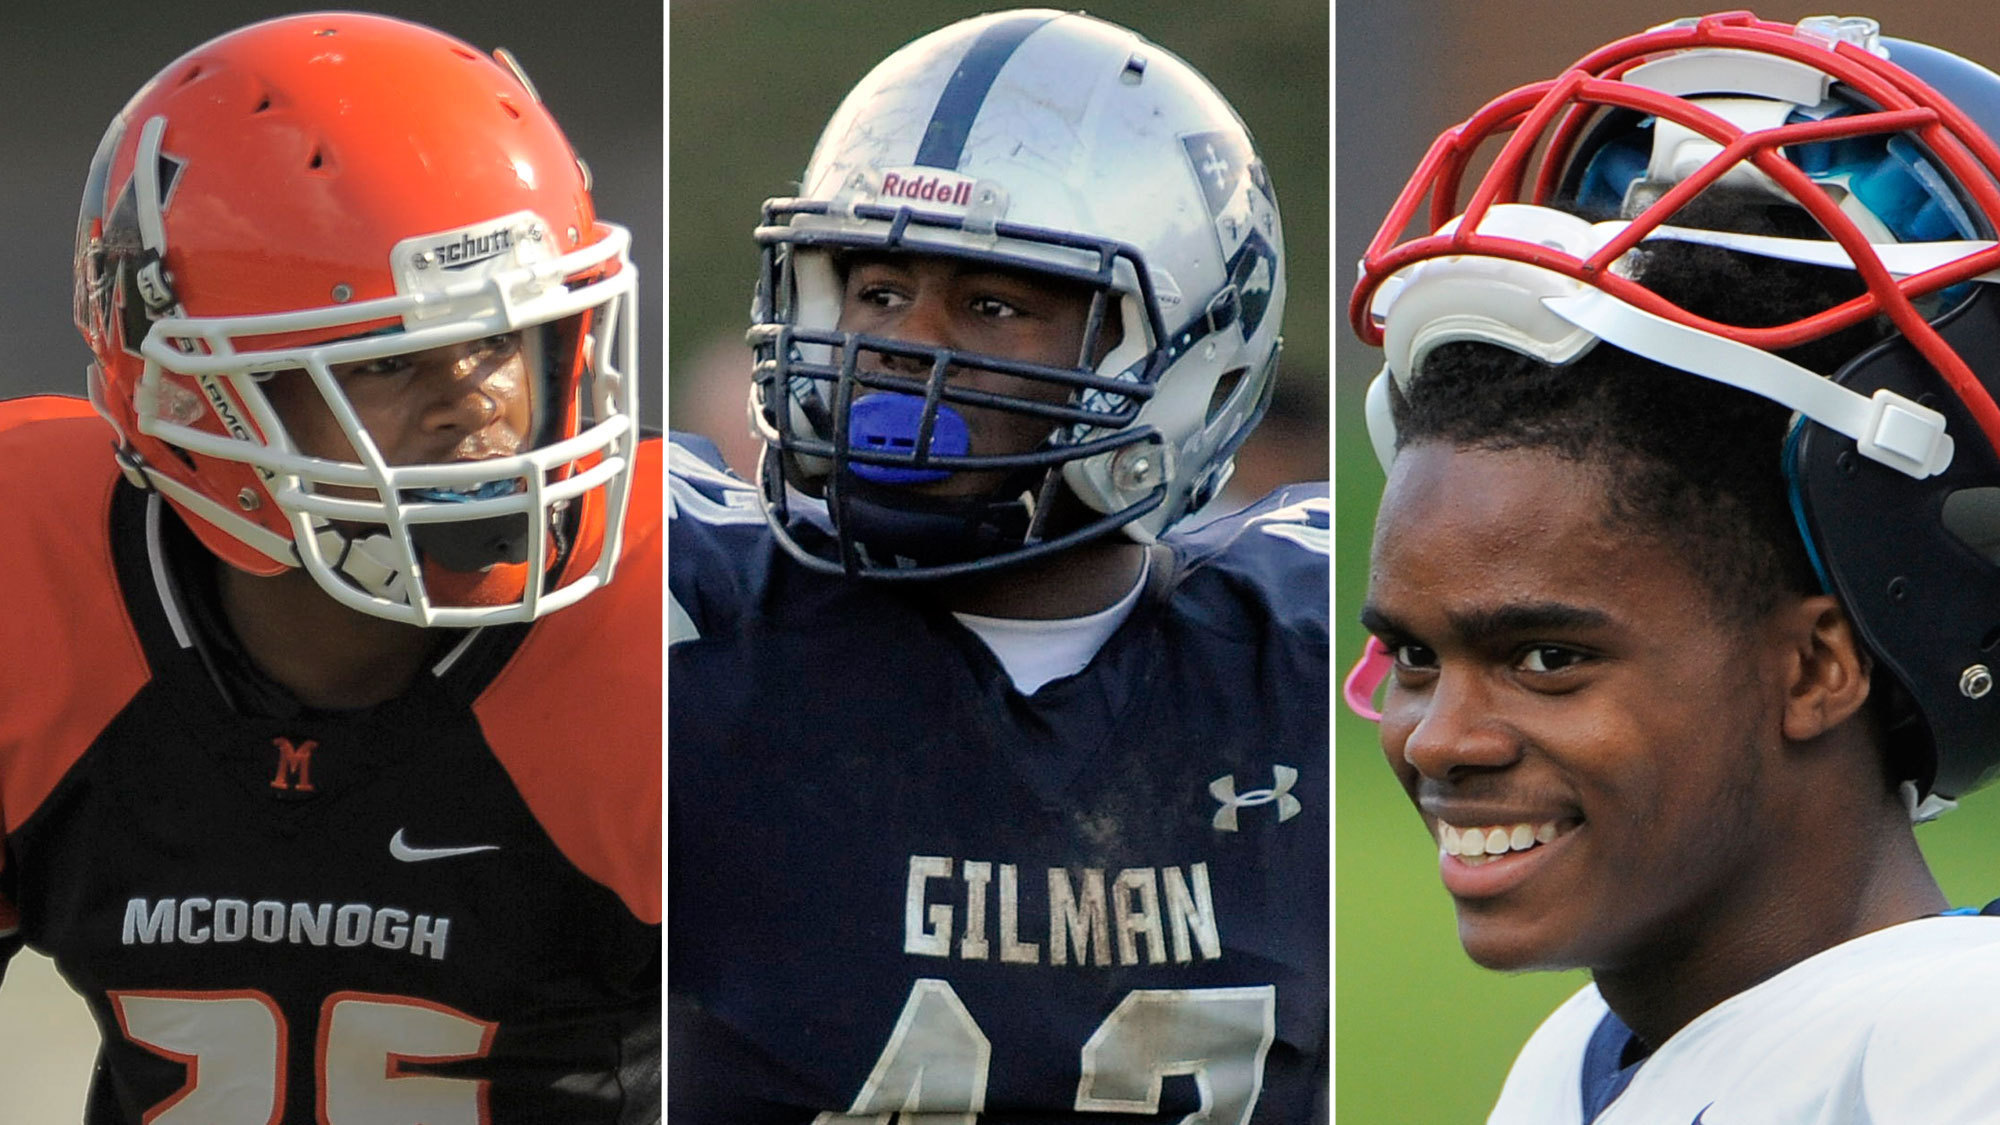 Left to right: Eric Burrell (McDonogh), Ellison Jordan (Gilman) and Steven Smothers (Franklin).